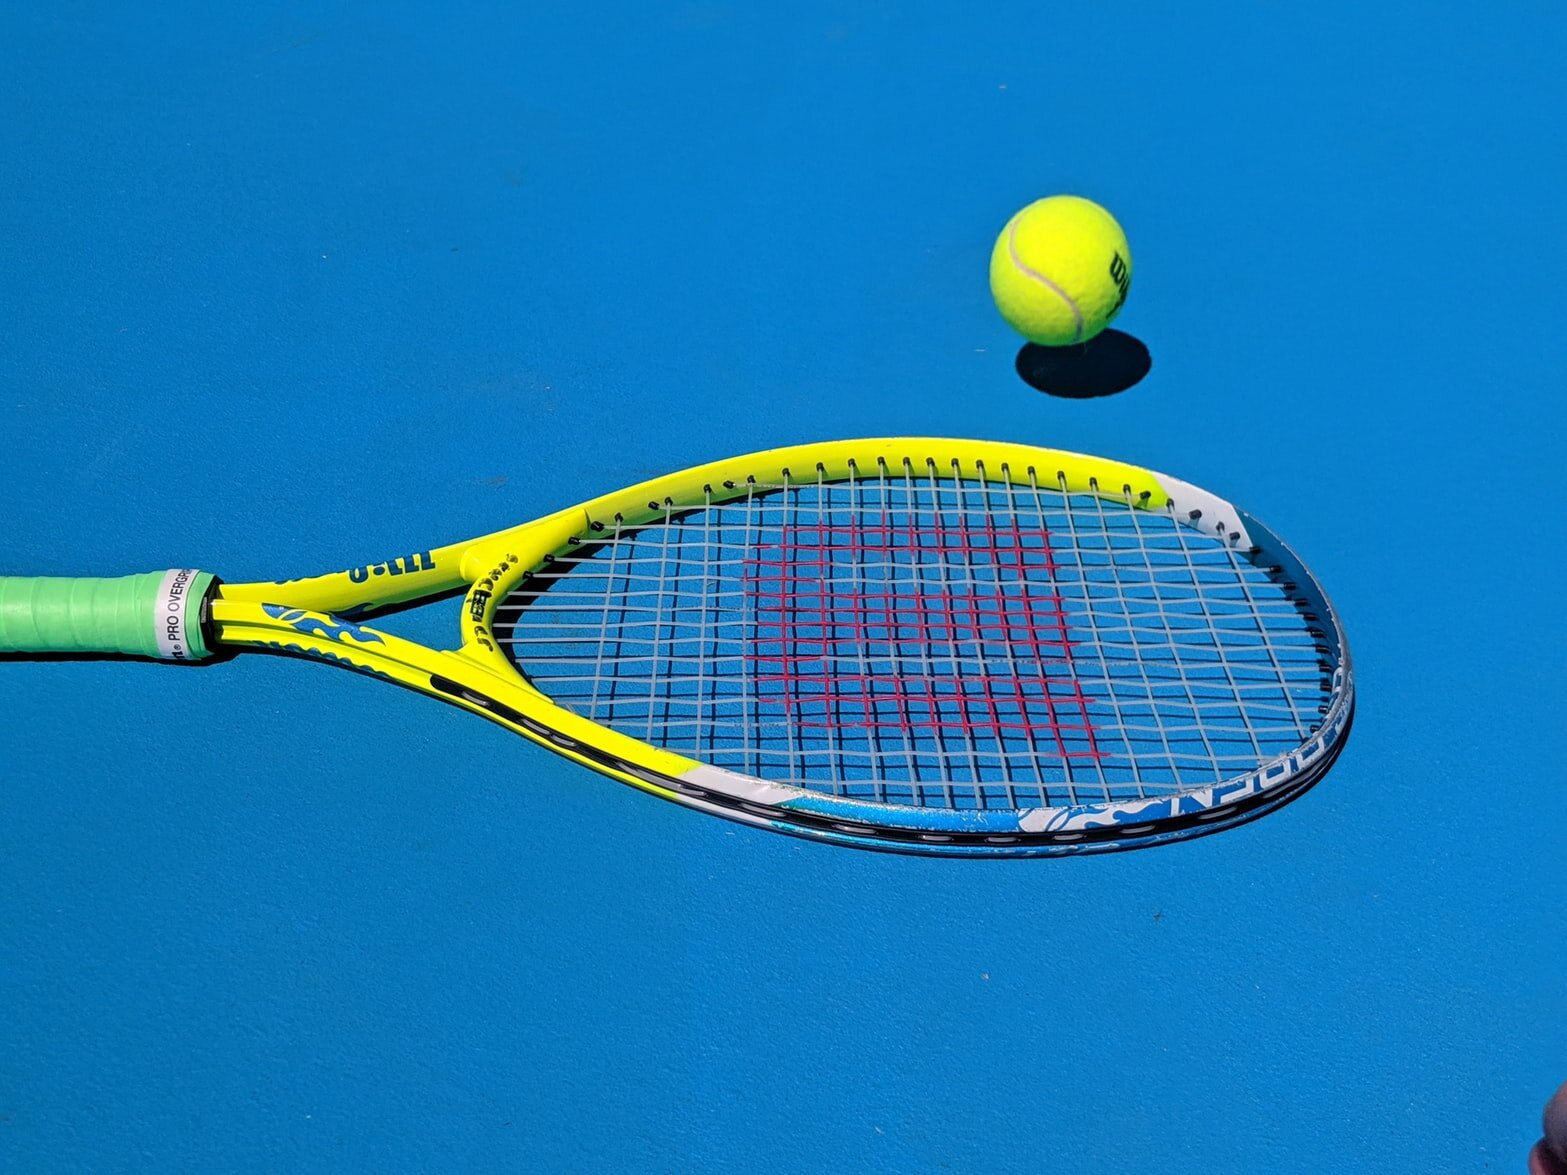 Did you know - You can host a tennis or pickleball party at the club?